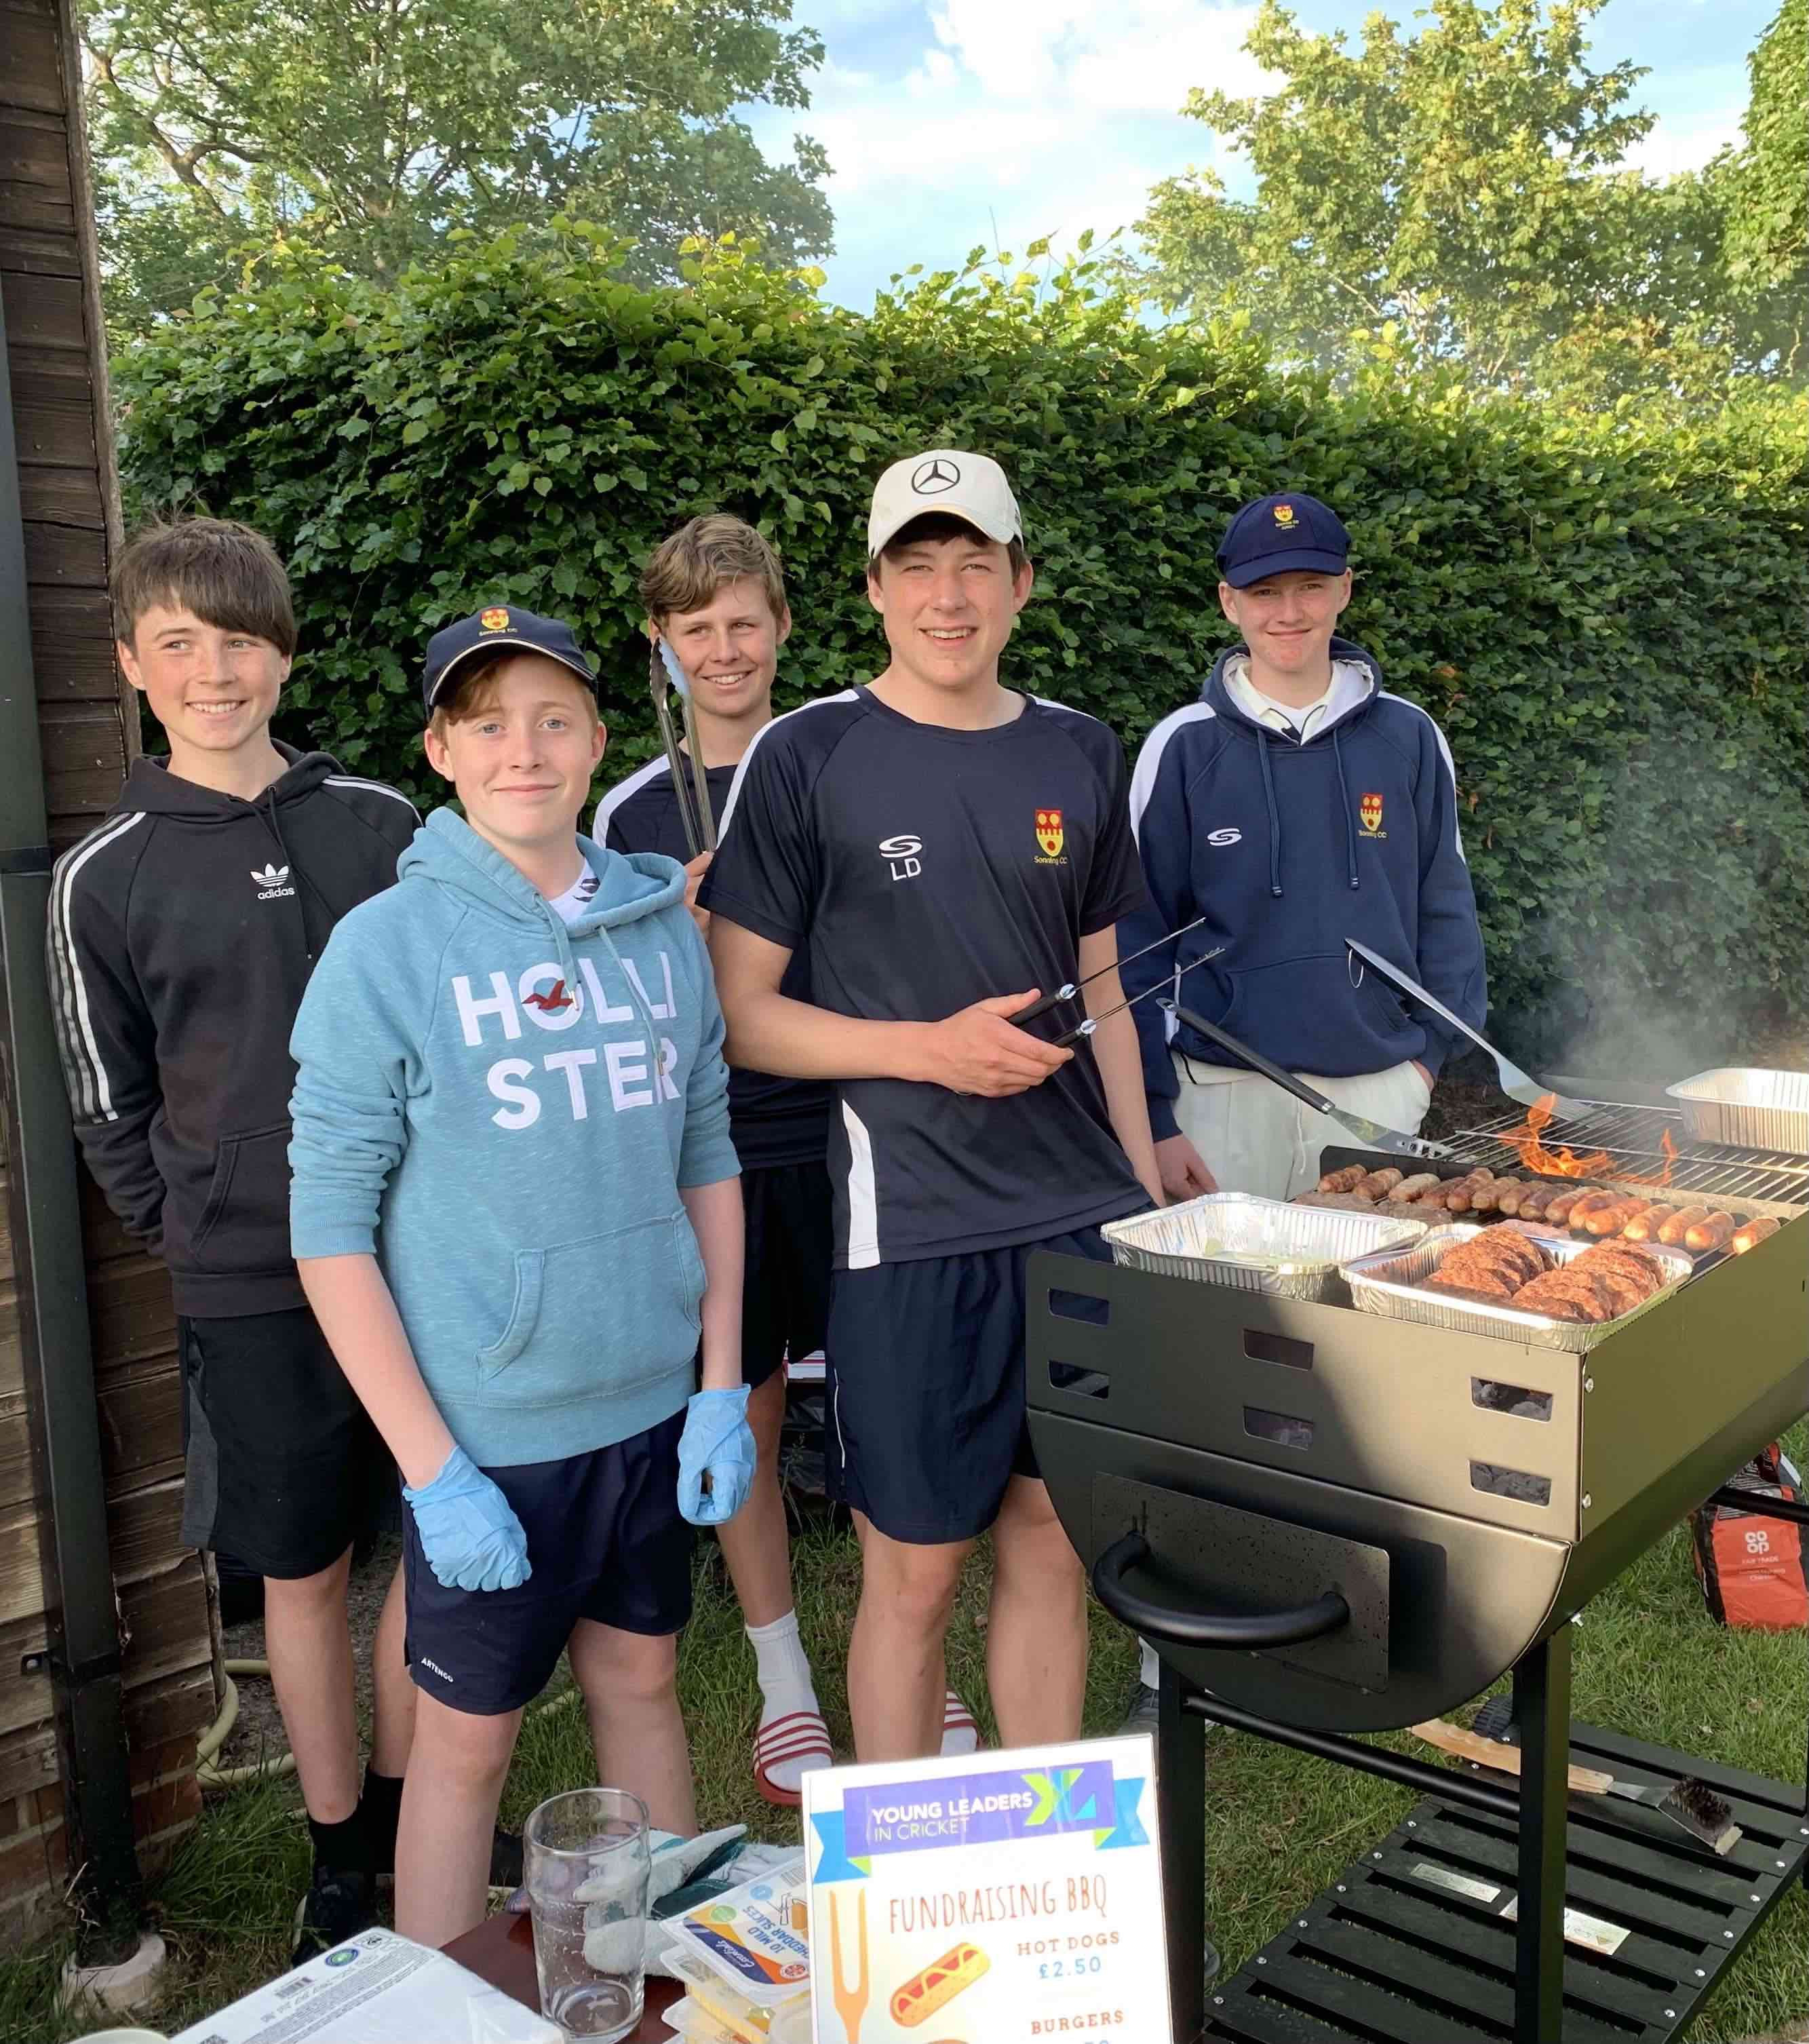 Sonning CC Young Leaders raise £288 for Charity